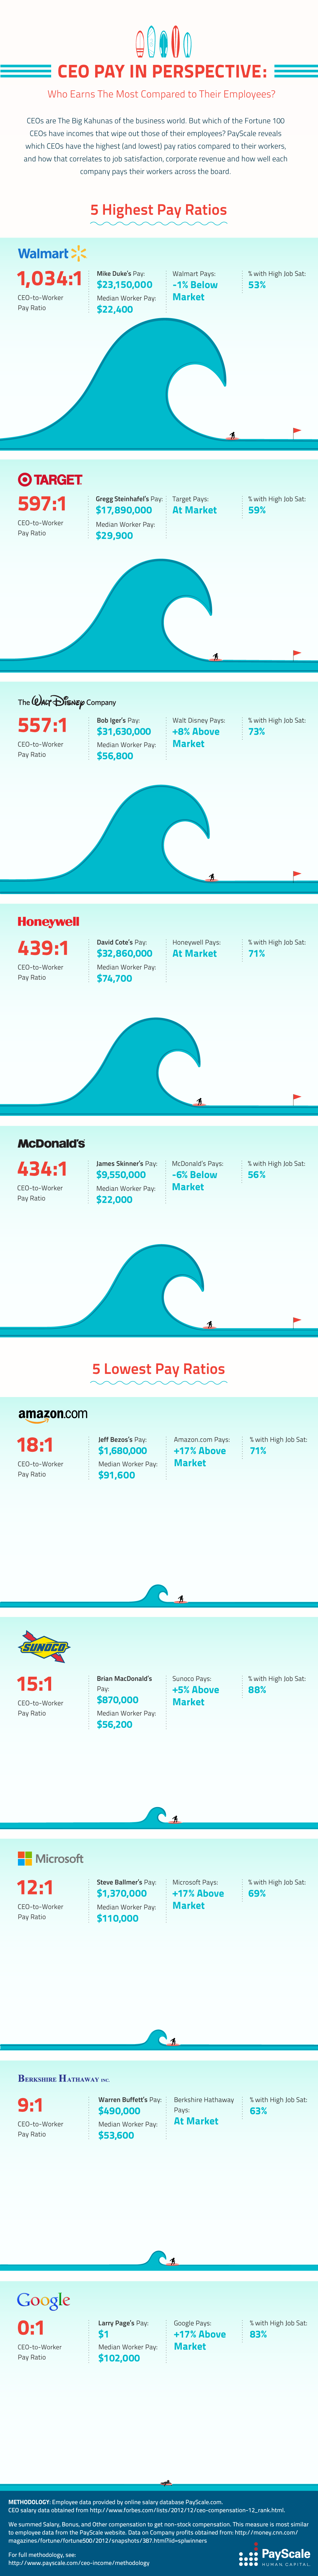 Salary Showdown: CEO Vs Their Employees